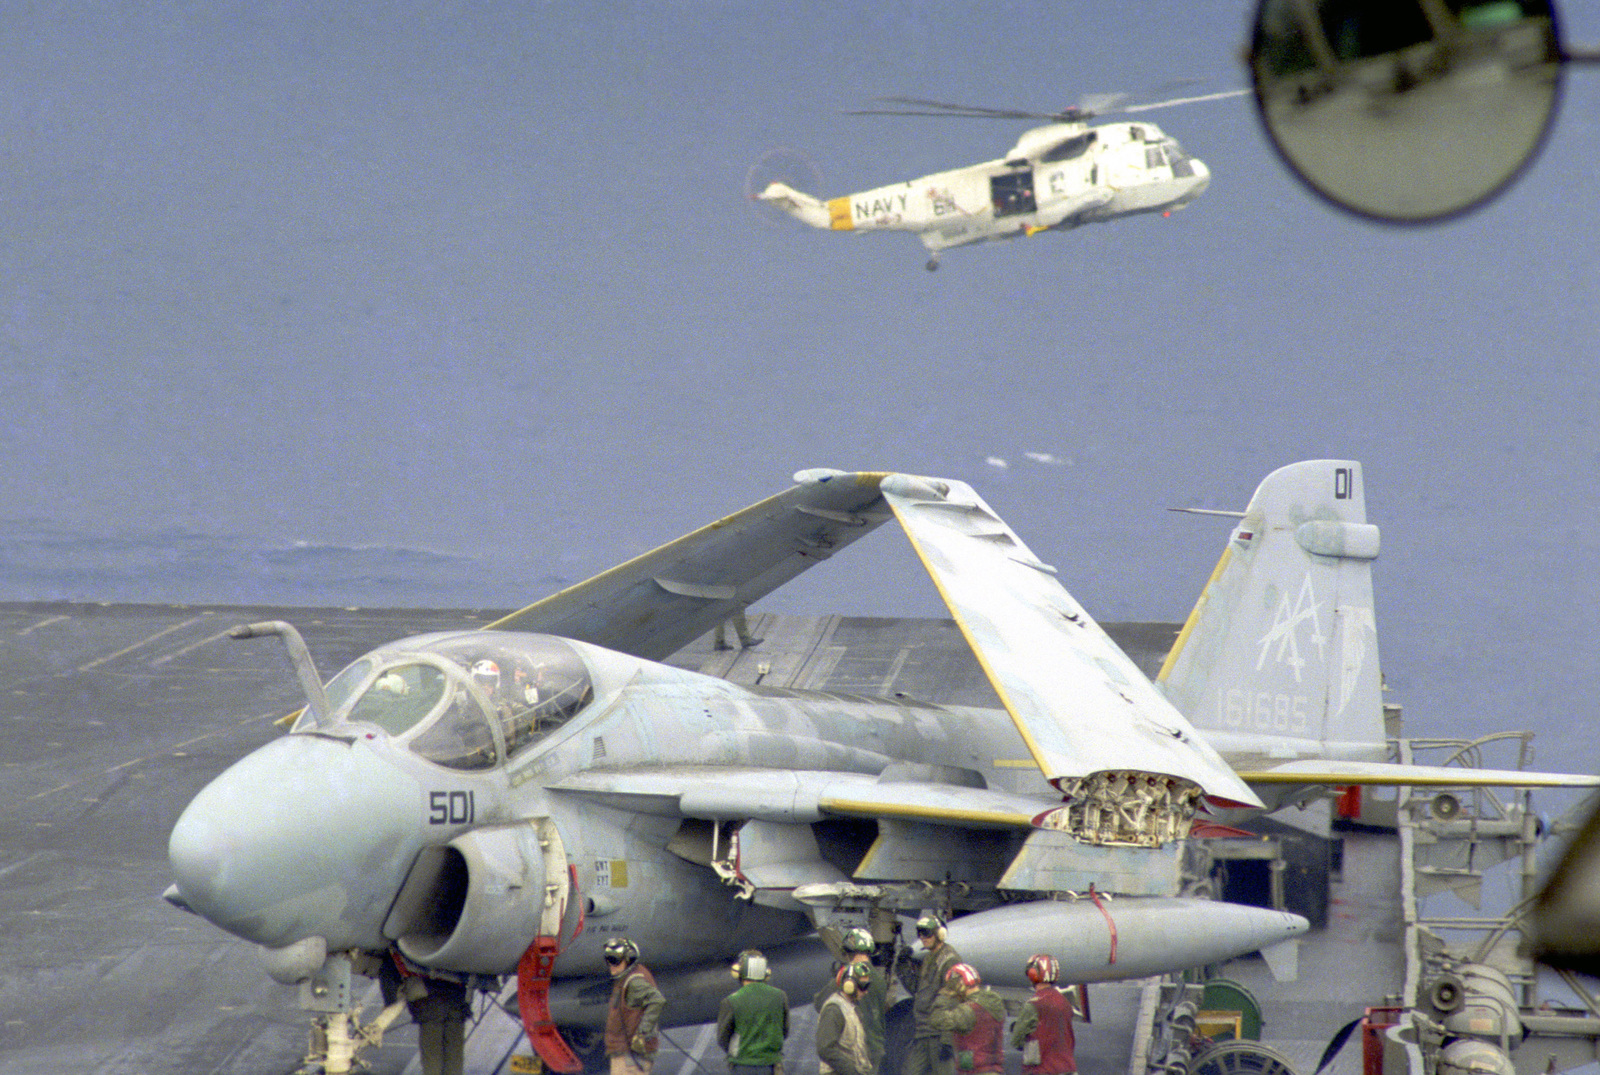 Crewmen prepare an A-6E Intruder aircraft for flight operations on the deck of the aircraft carrier USS SARATOGA (CV 60). In the background is an SH-3H helicopter